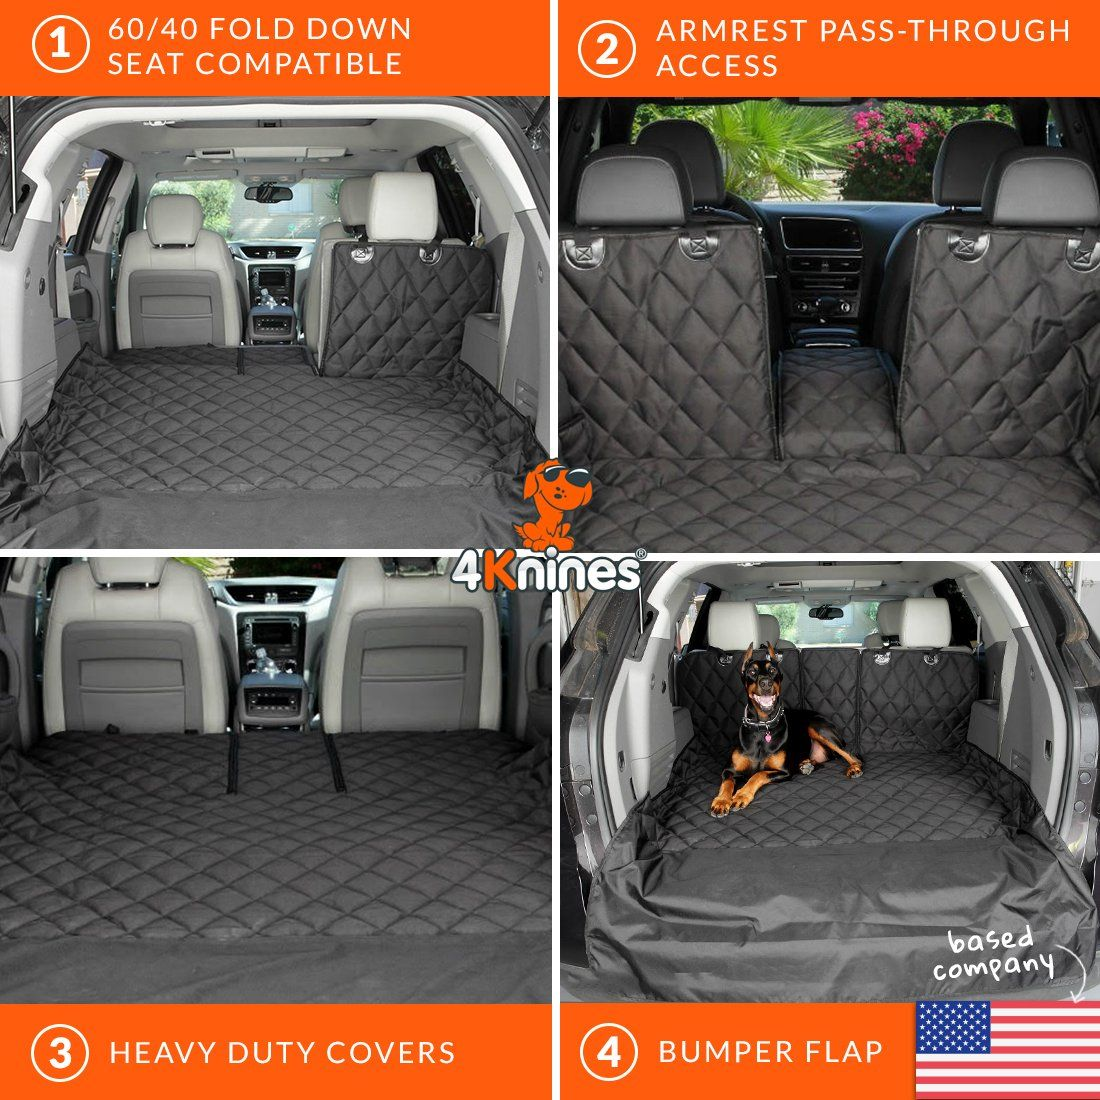 4Knines SUV Cargo Liner for Fold Down Seats Heavy Duty 60